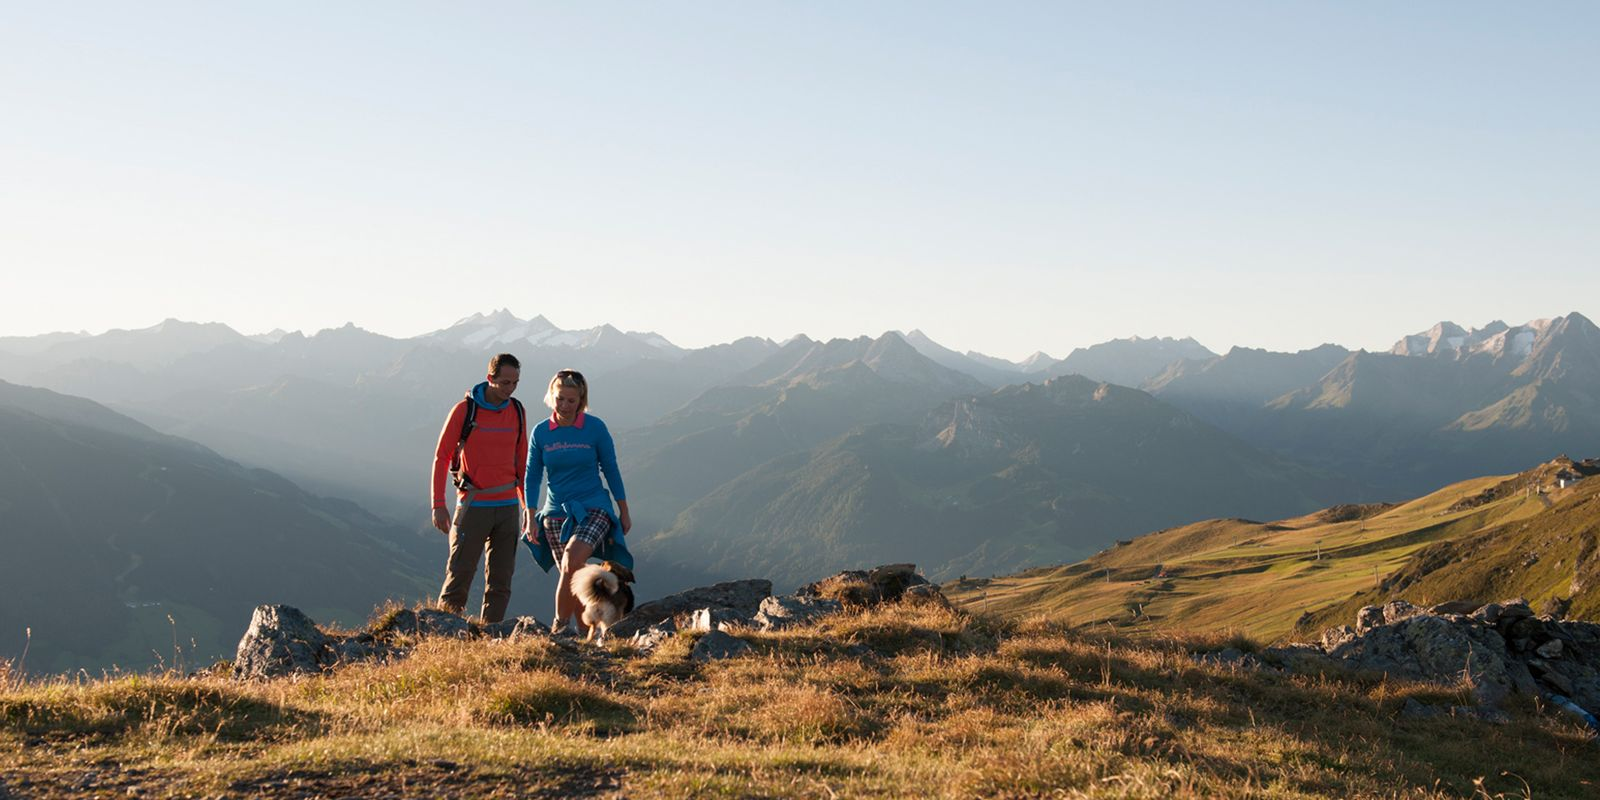 Summer vacation in the Zillertal